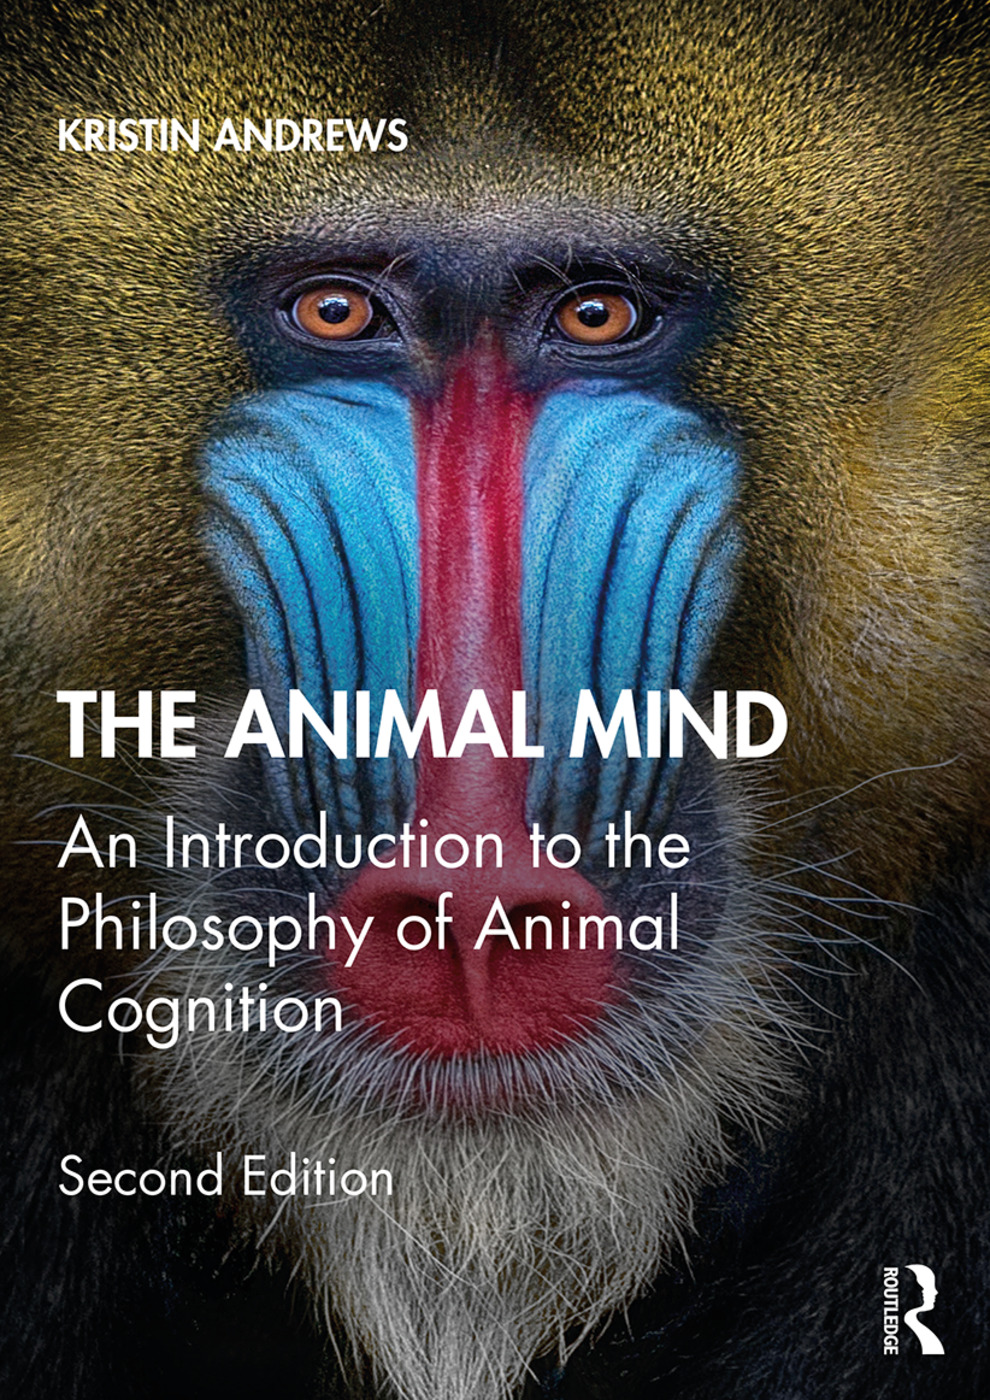 The Animal Mind: An Introduction to the Philosophy of Animal Cognition book cover